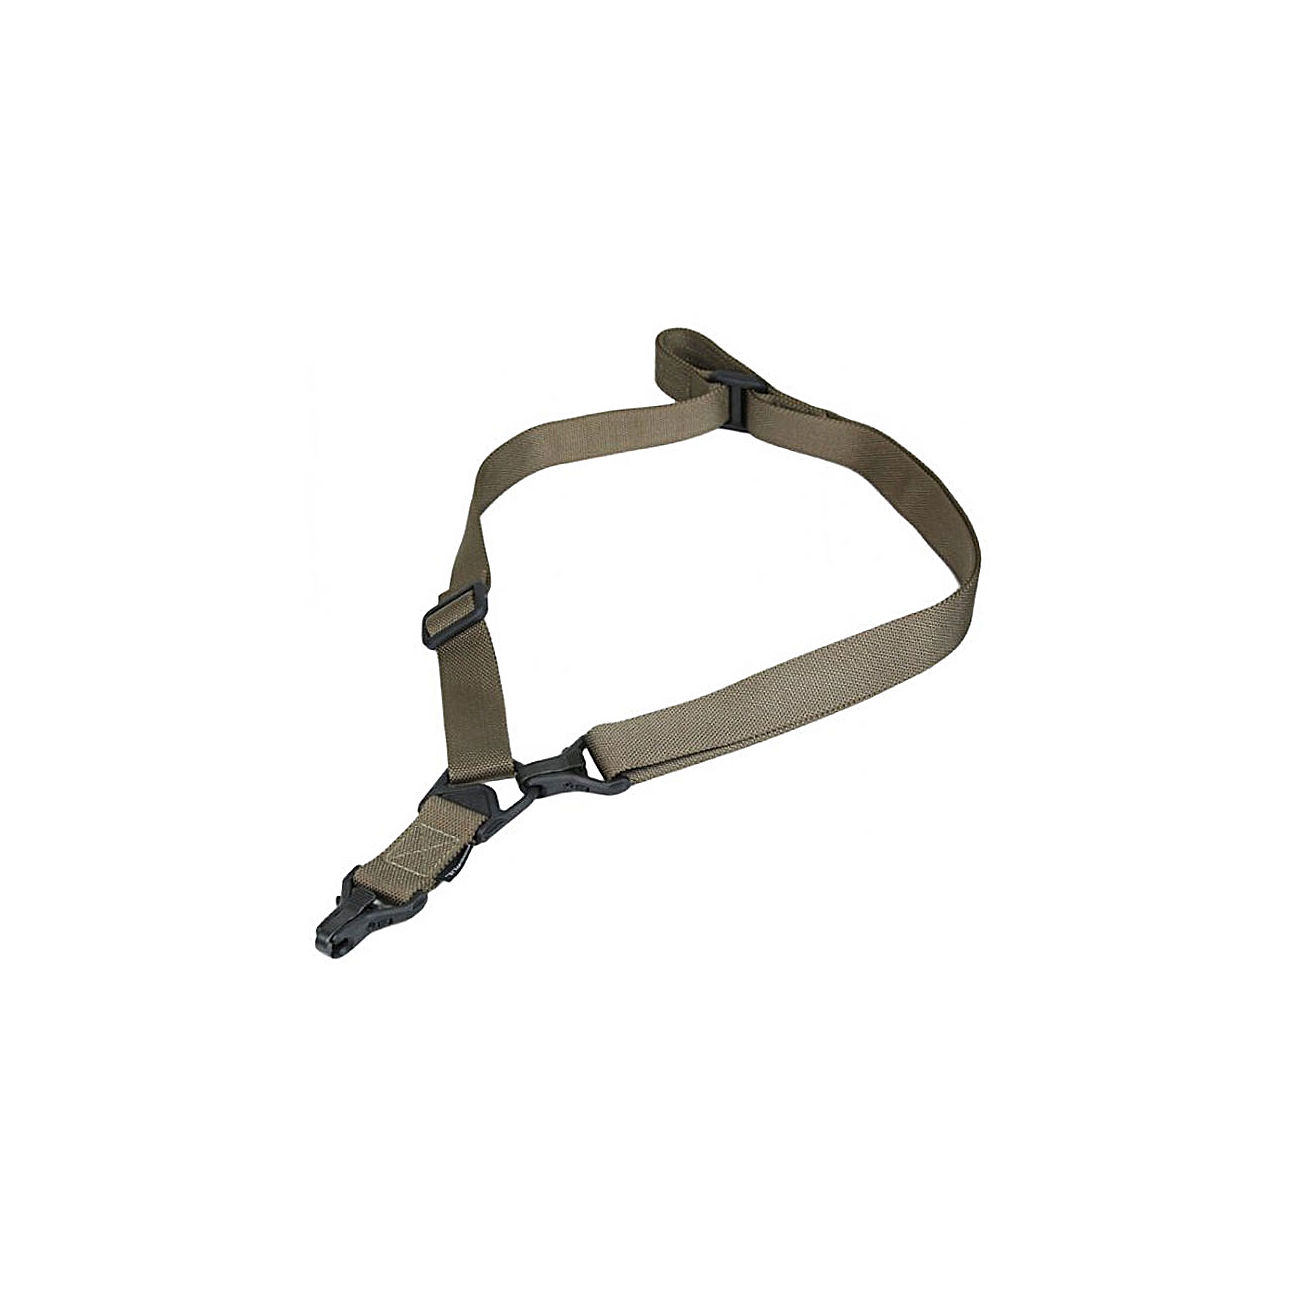 MagPul MS3 Multi-Mission Sling 1- / 2-Punkt Tragegurt coyote 0